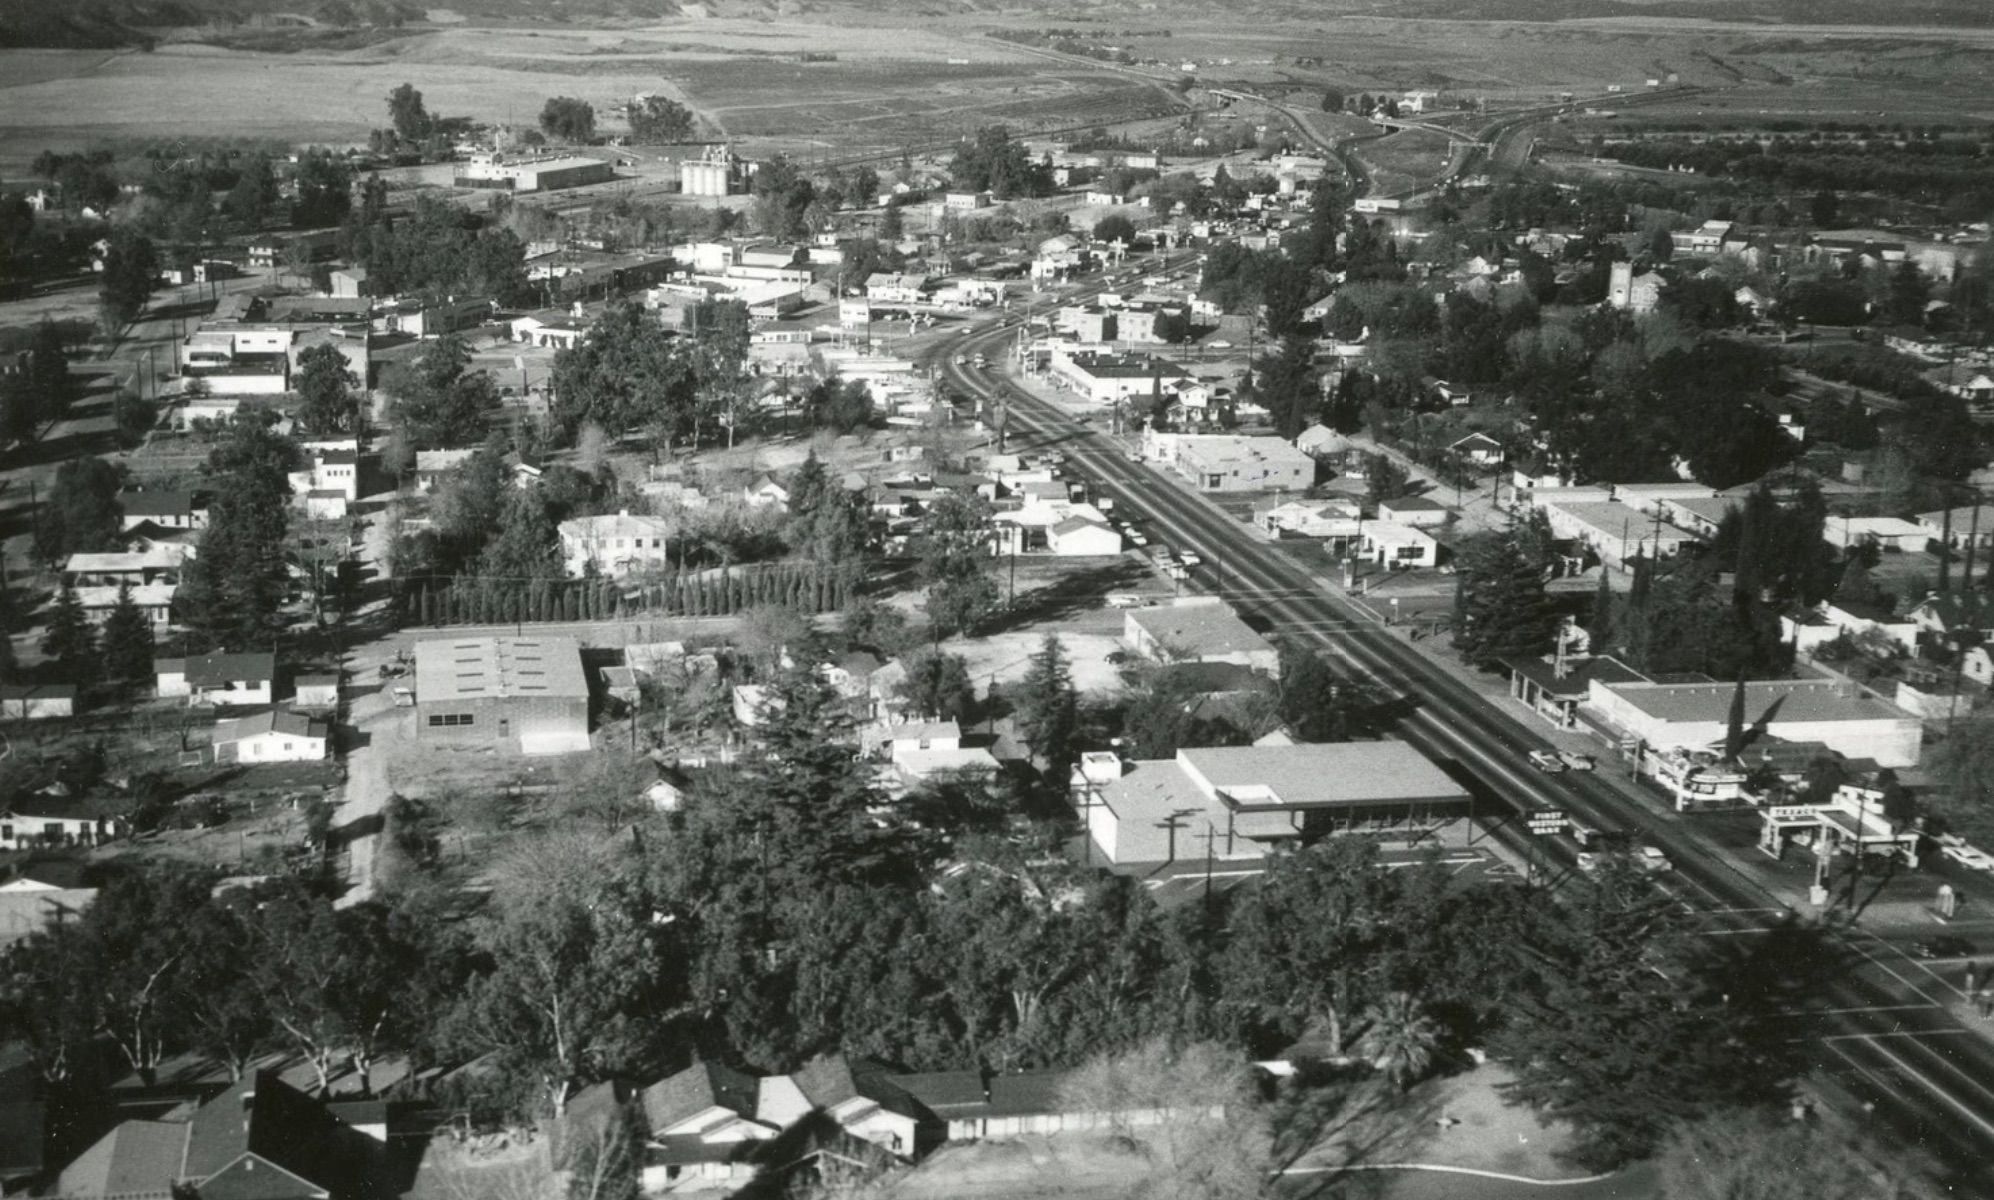 Downtown Beaumont - 6th St - 1950's (Note: Photograph Courtesy of the Banning Library District)